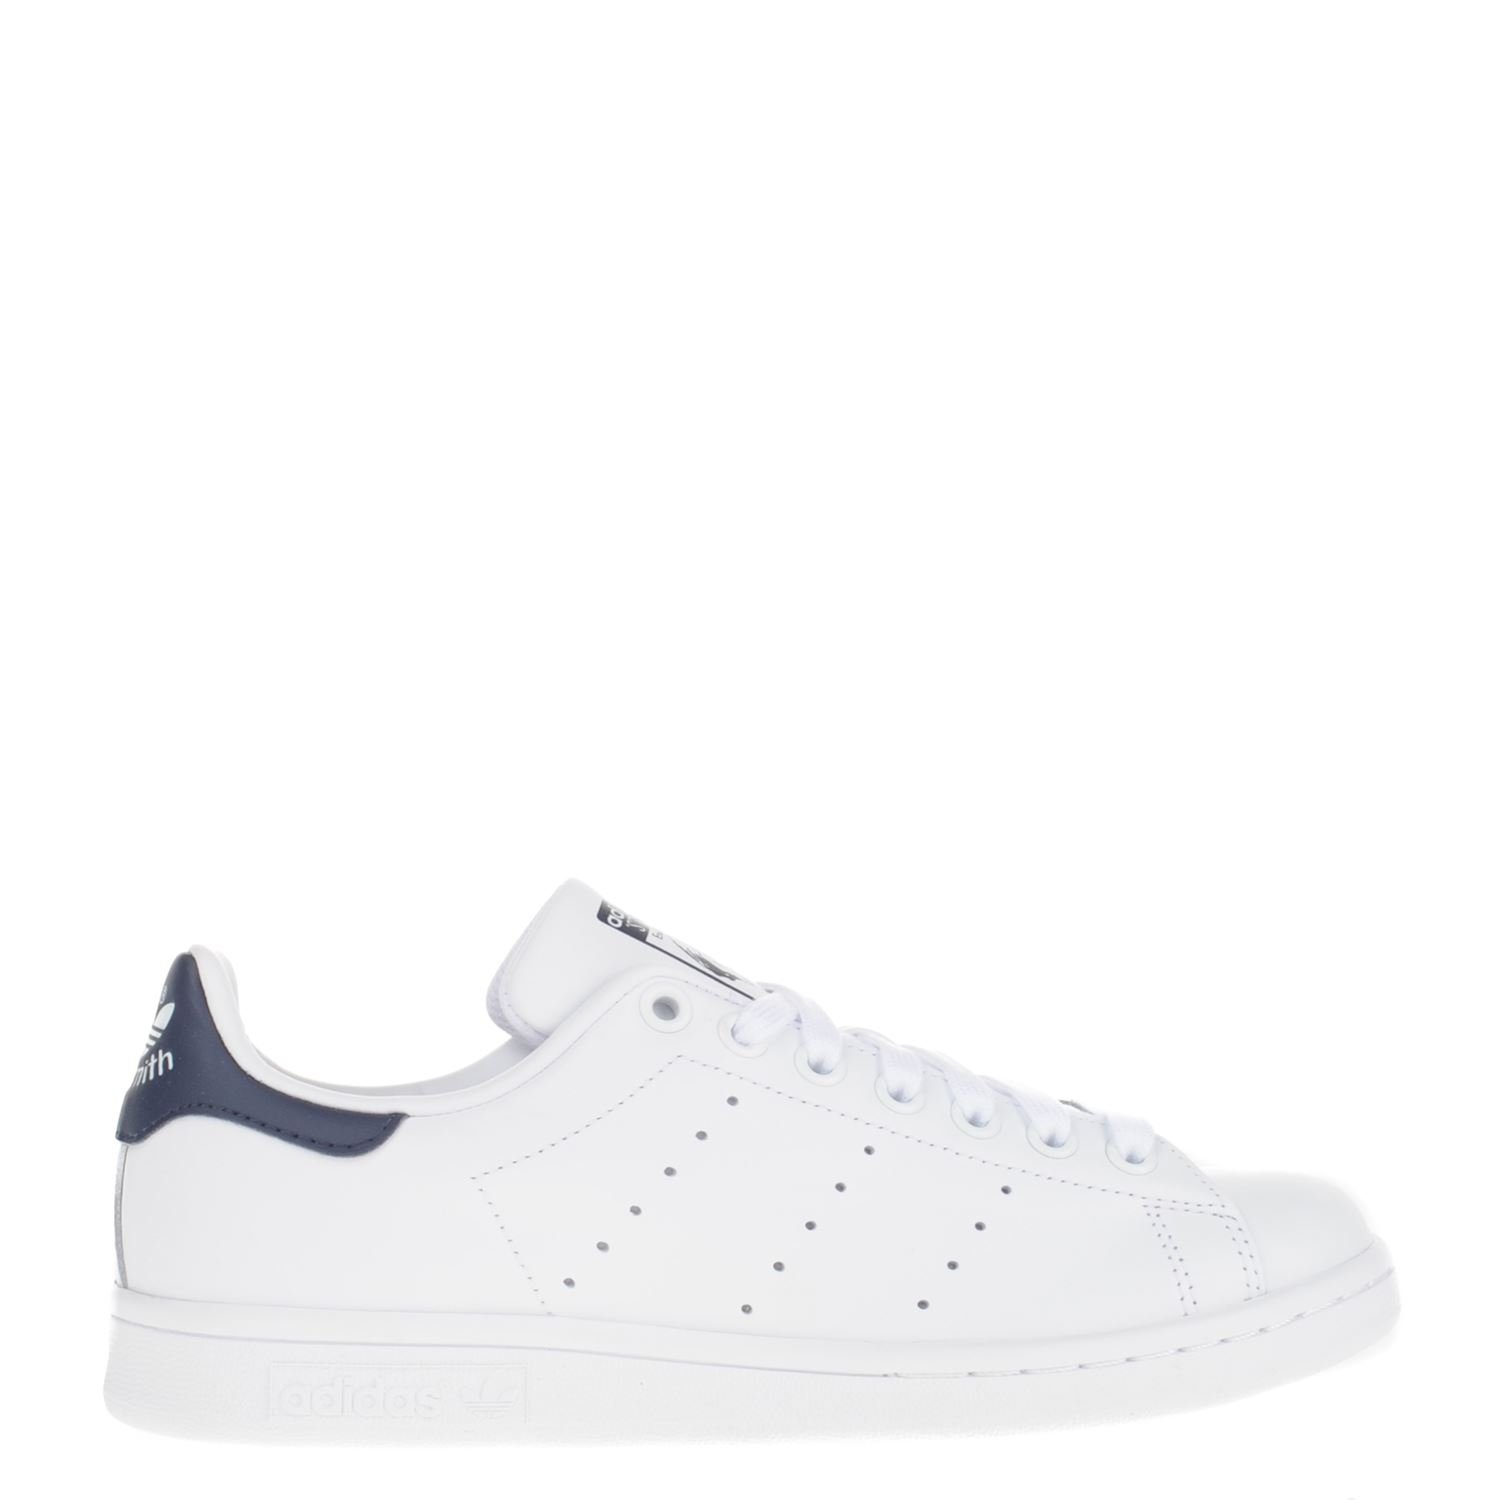 Adidas STAN SMITH dames lage sneakers wit